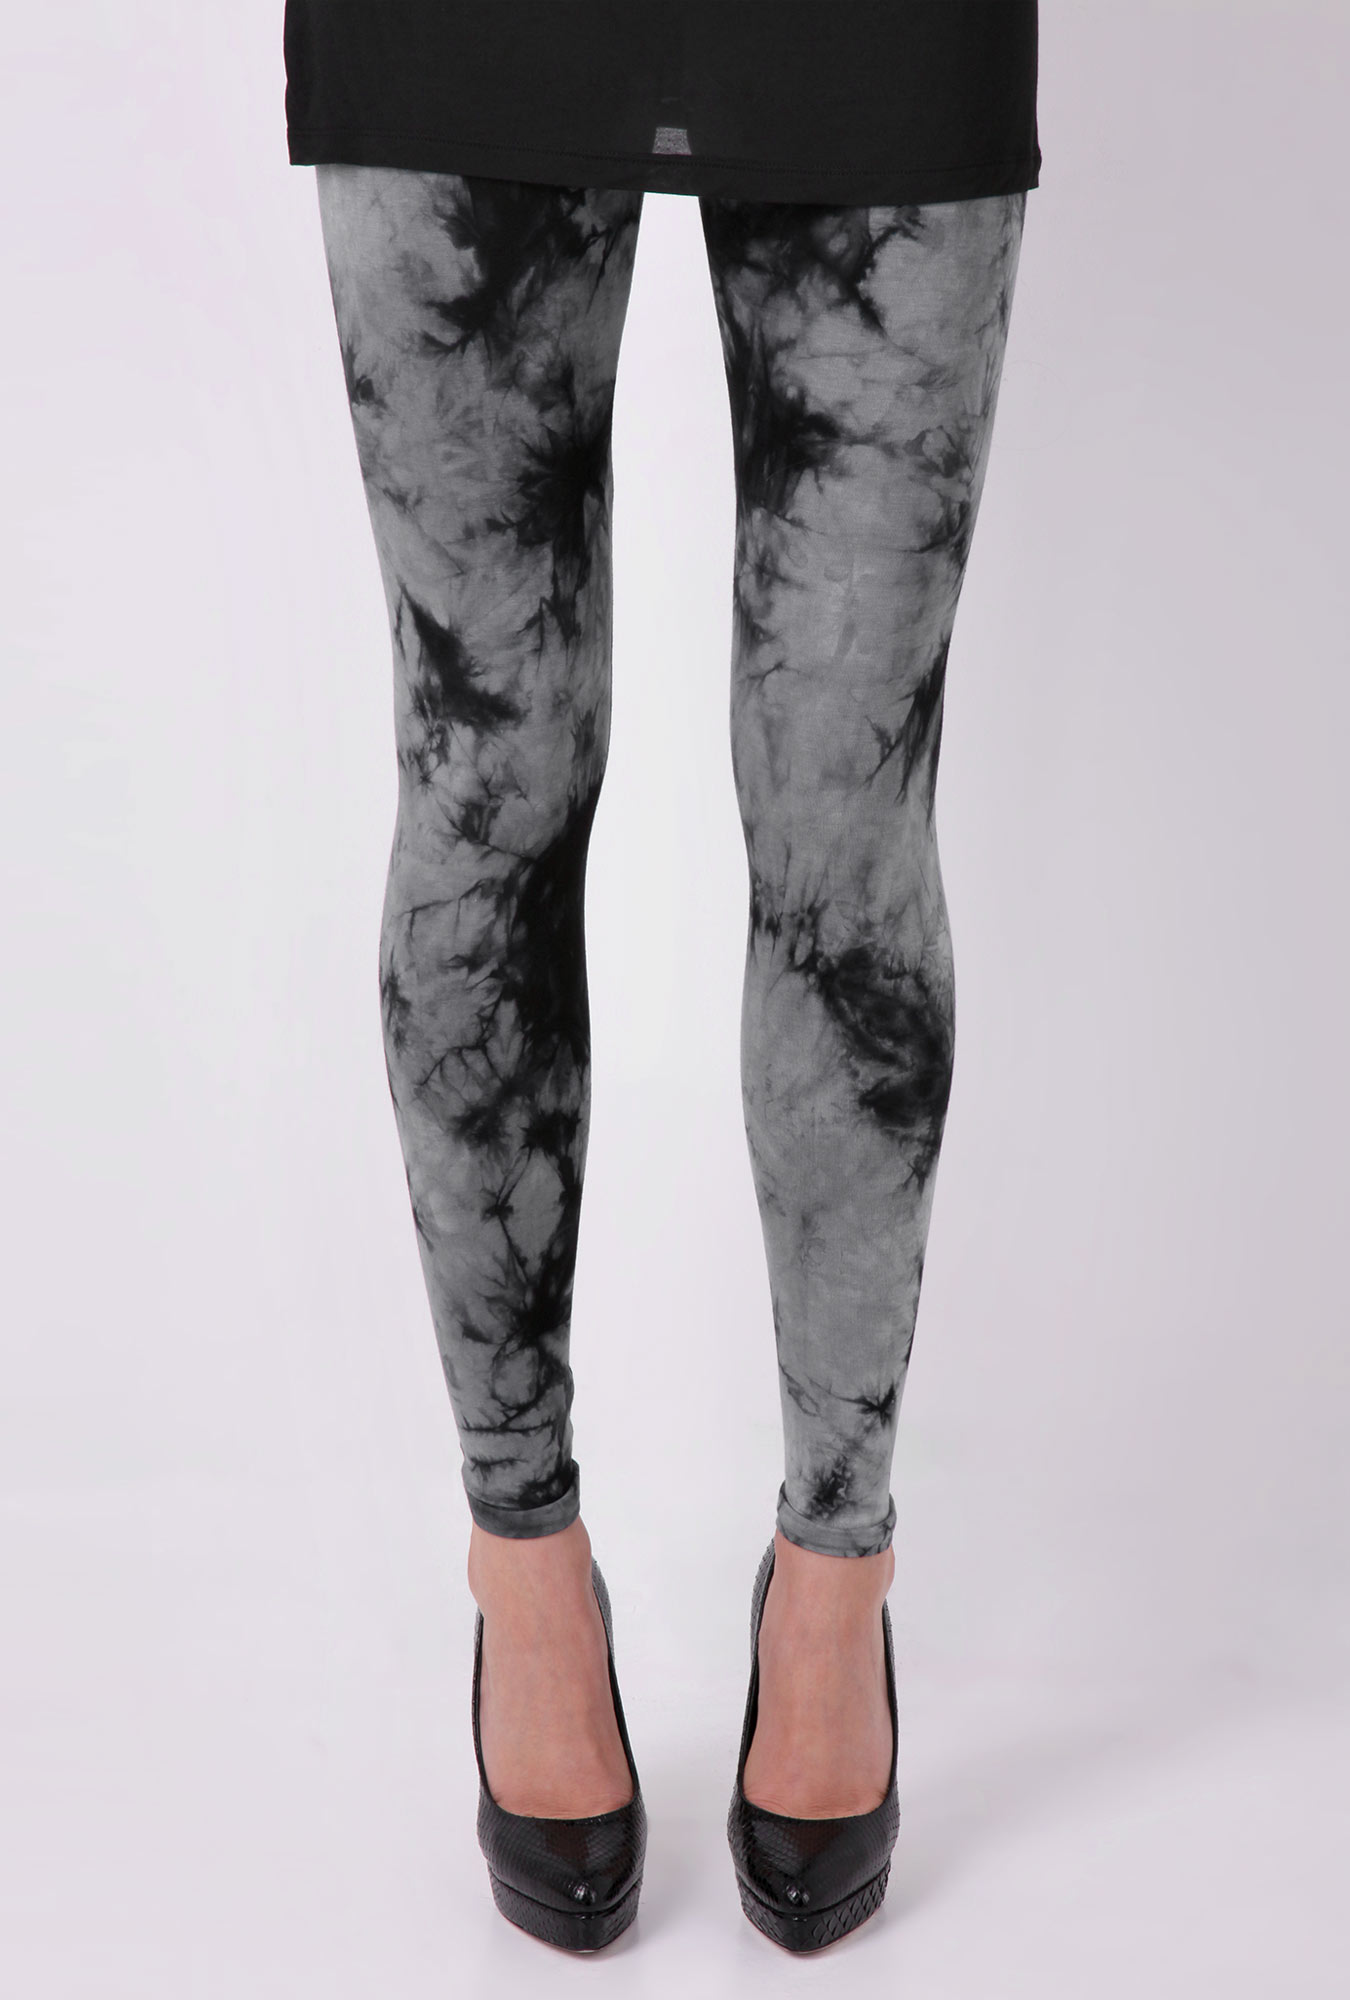 Black Tie Dye Leggings The Else